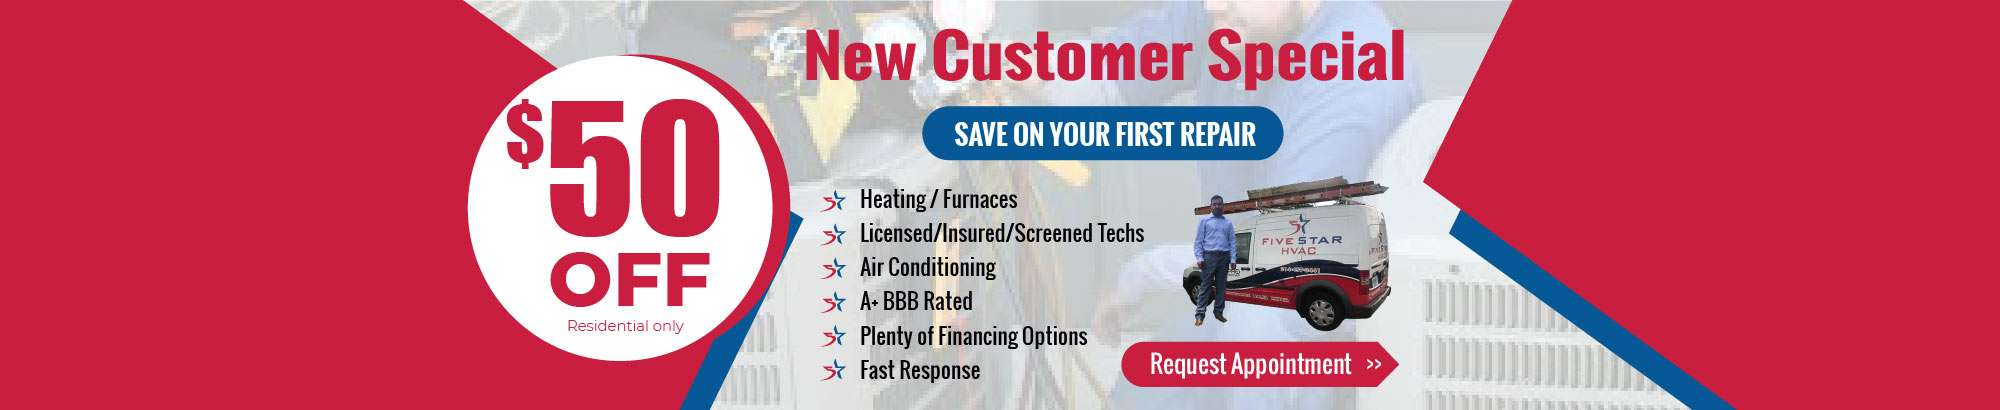 New Customer AC & Heating Special